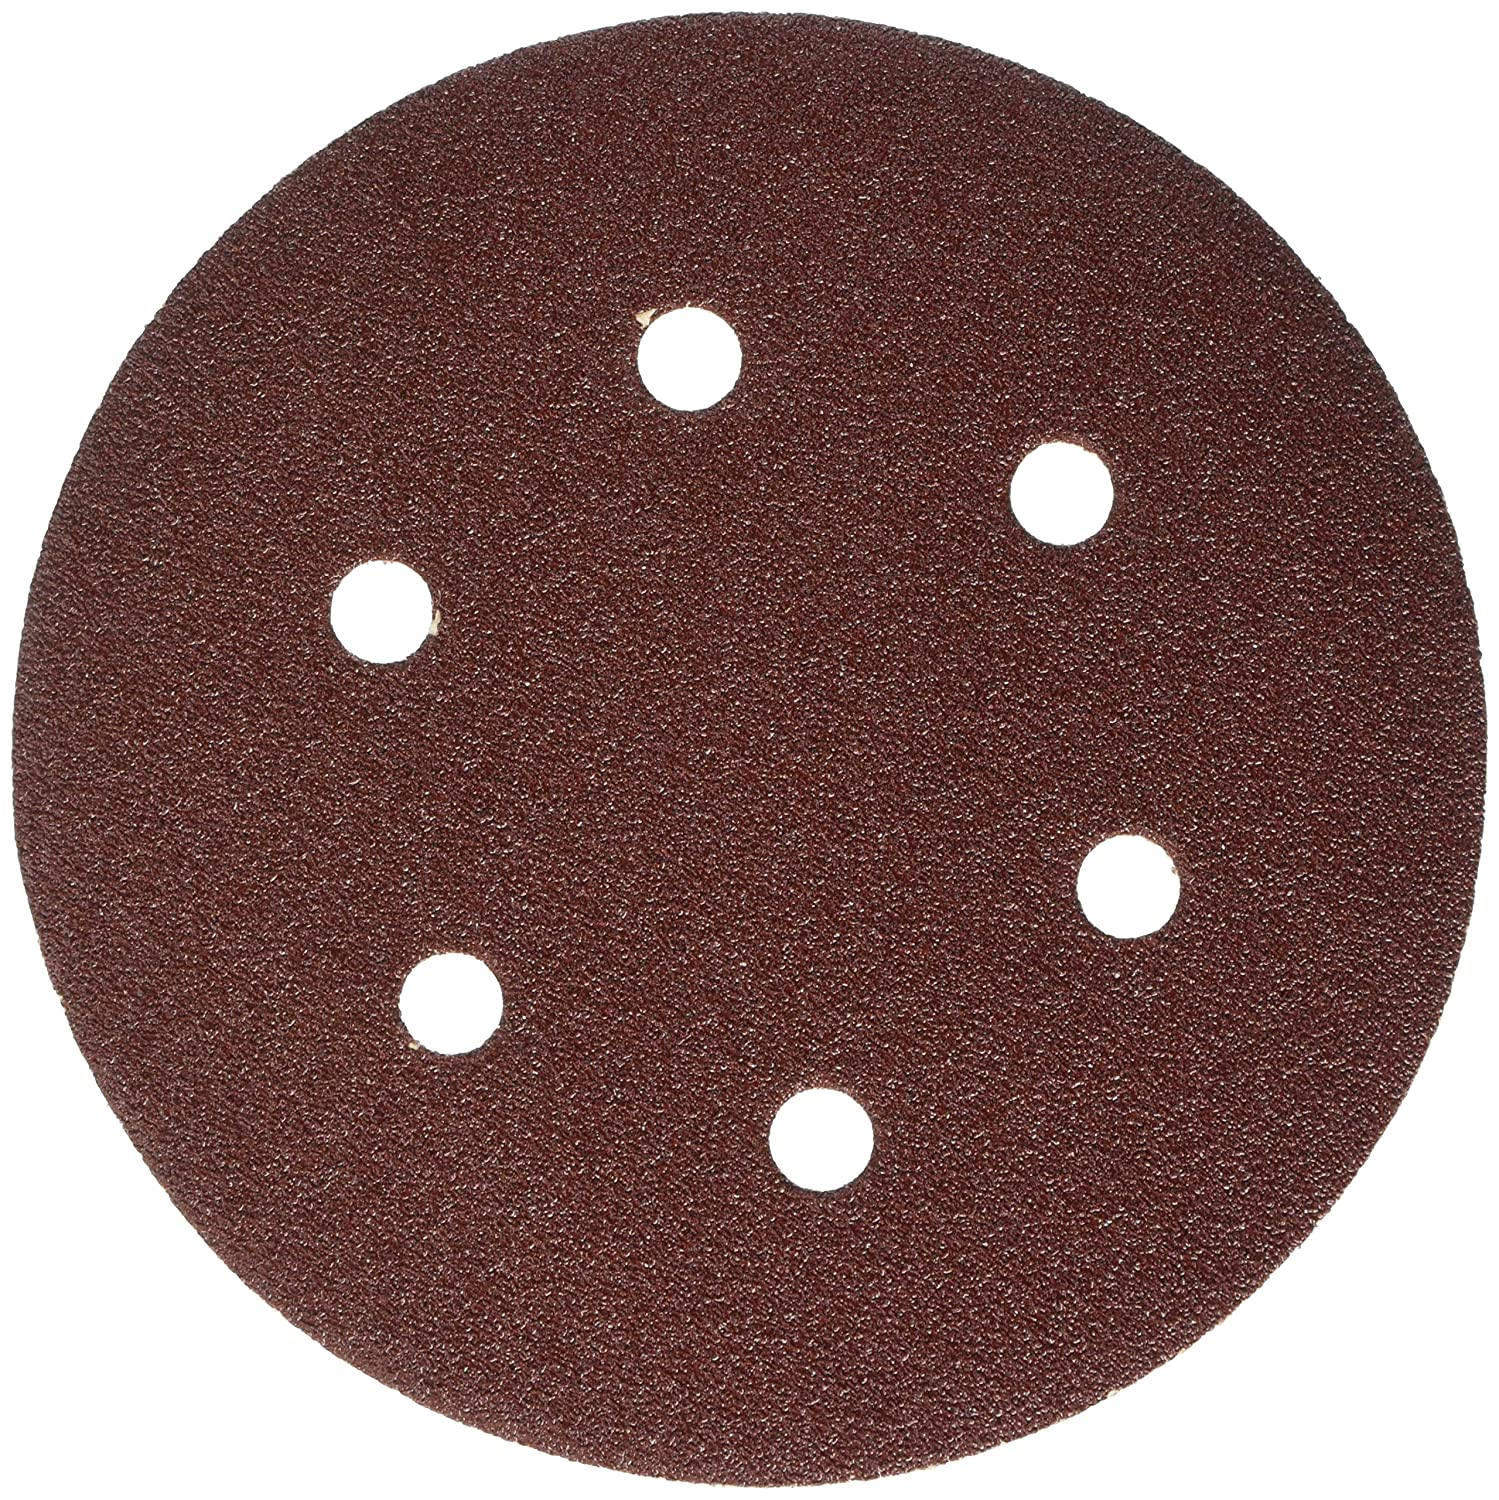 Connex COM108060 Easy-Fix Perforated for Eccentric Grinders Sanding Disc, Brown, 150 mm/Size K60, Set of 6 Pieces Conmetall